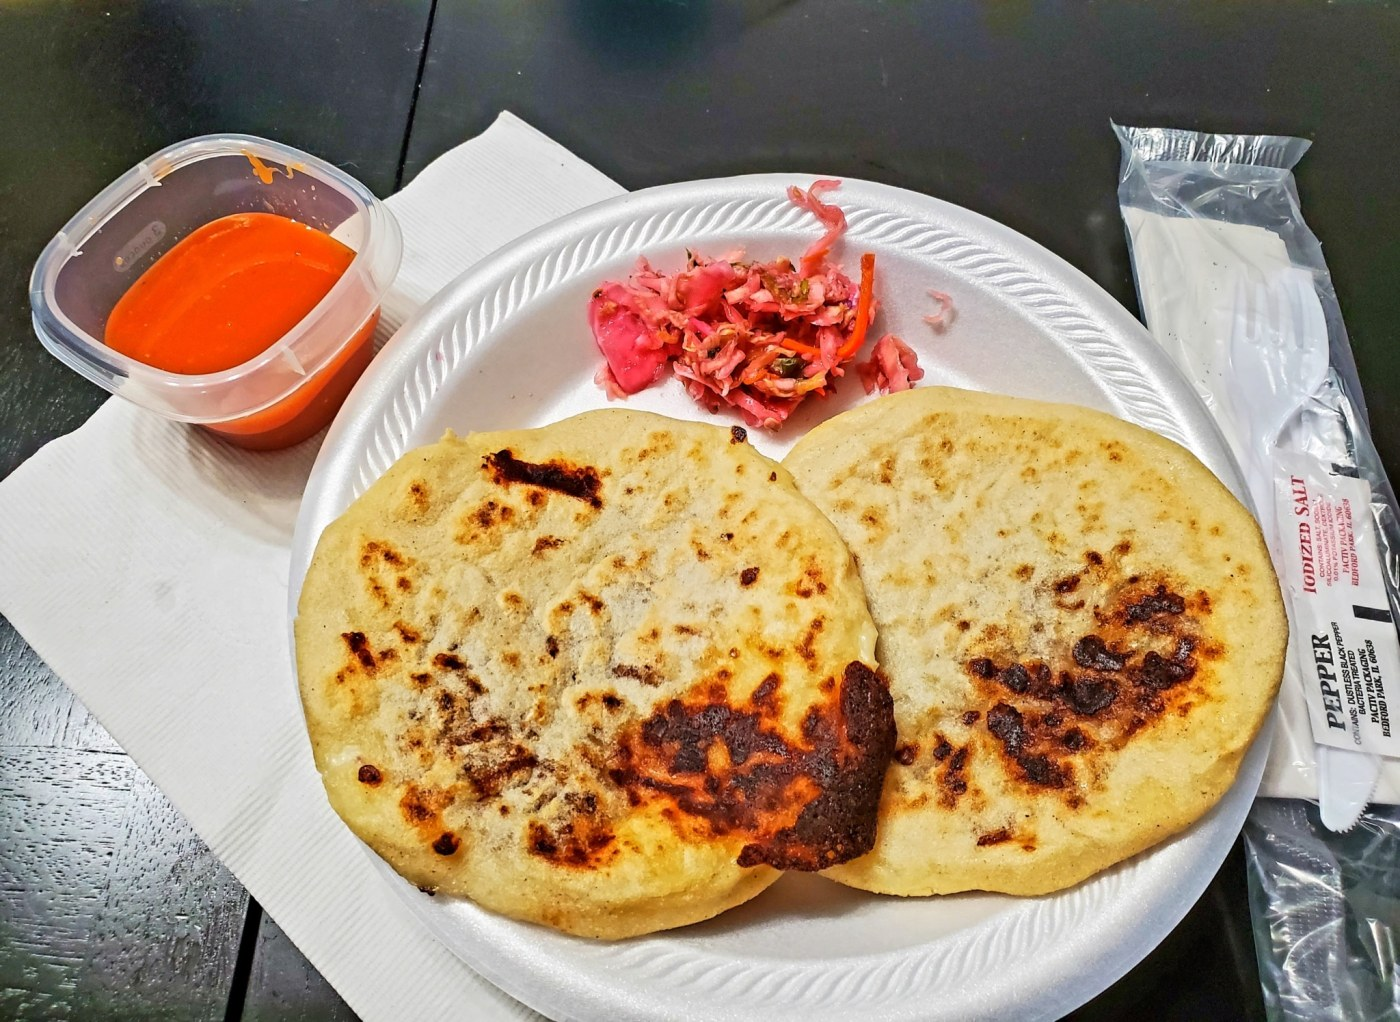 Plate with two pupusas on it and condiments on the side.